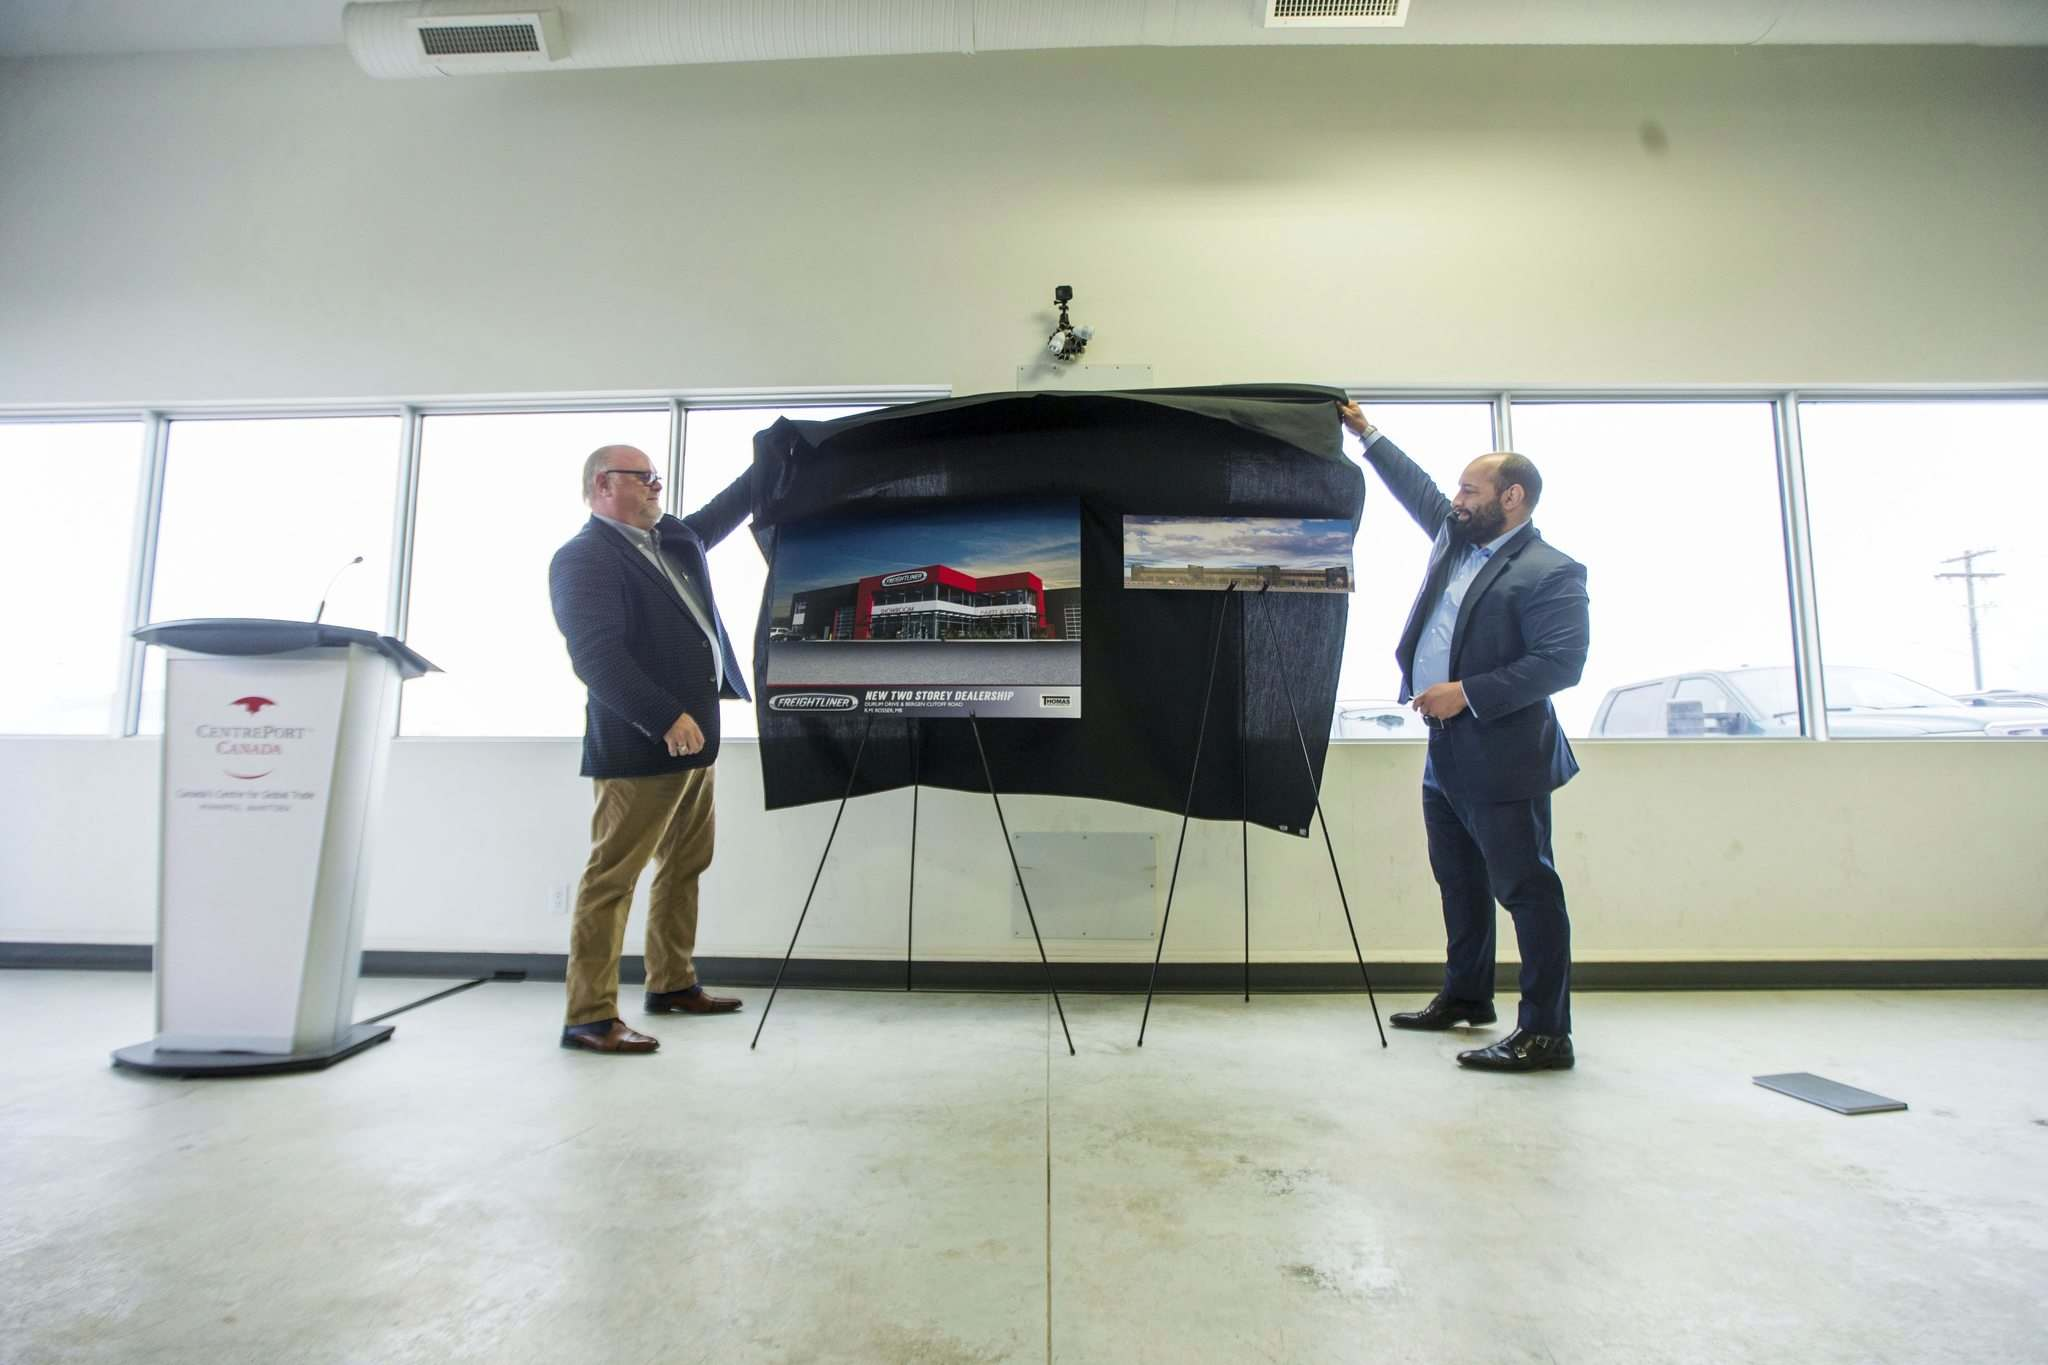 MIKAELA MACKENZIE / WINNIPEG FREE PRESS</p><p>Ken Talbot (left), president of Freightliner Manitoba, and Chris Macsymic unveil renderings of their new planned facilities at Brookside Industrial Park Phase III on Thursday.</p></p>